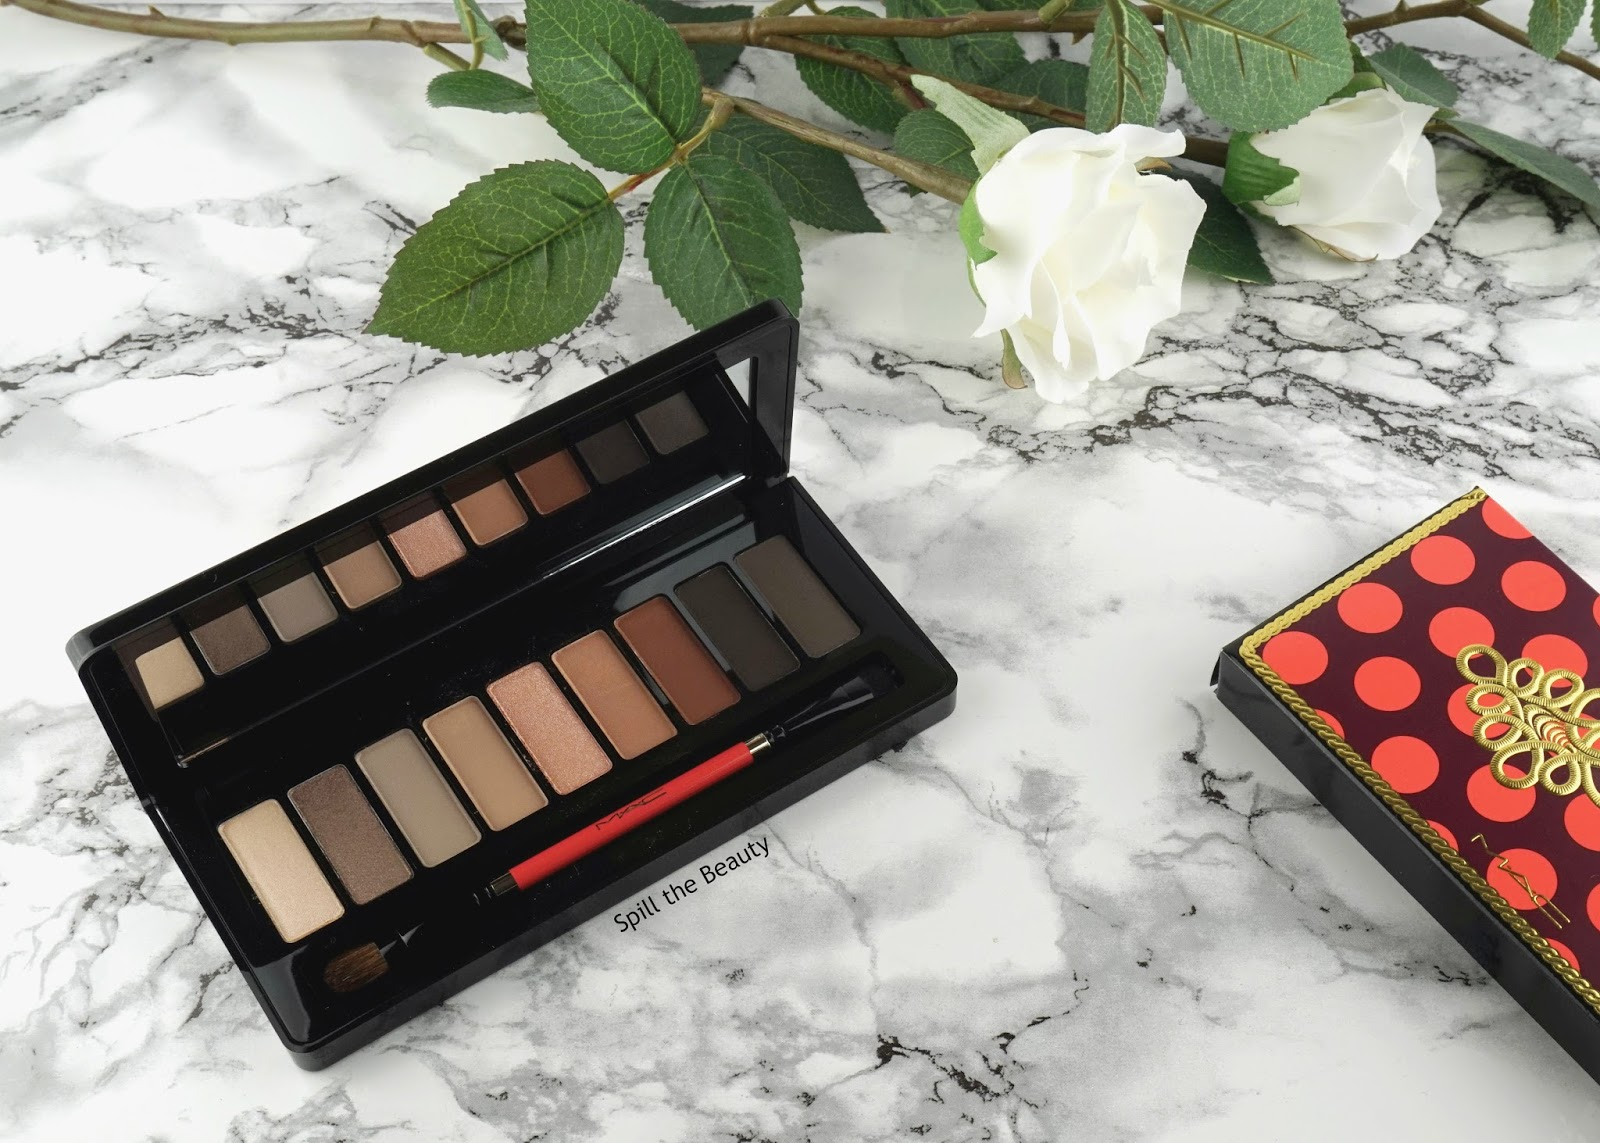 MAC Nutcracker Sweet Smoky Eye Compact Eye Shadow x 9 – Review, Swatches, and Look